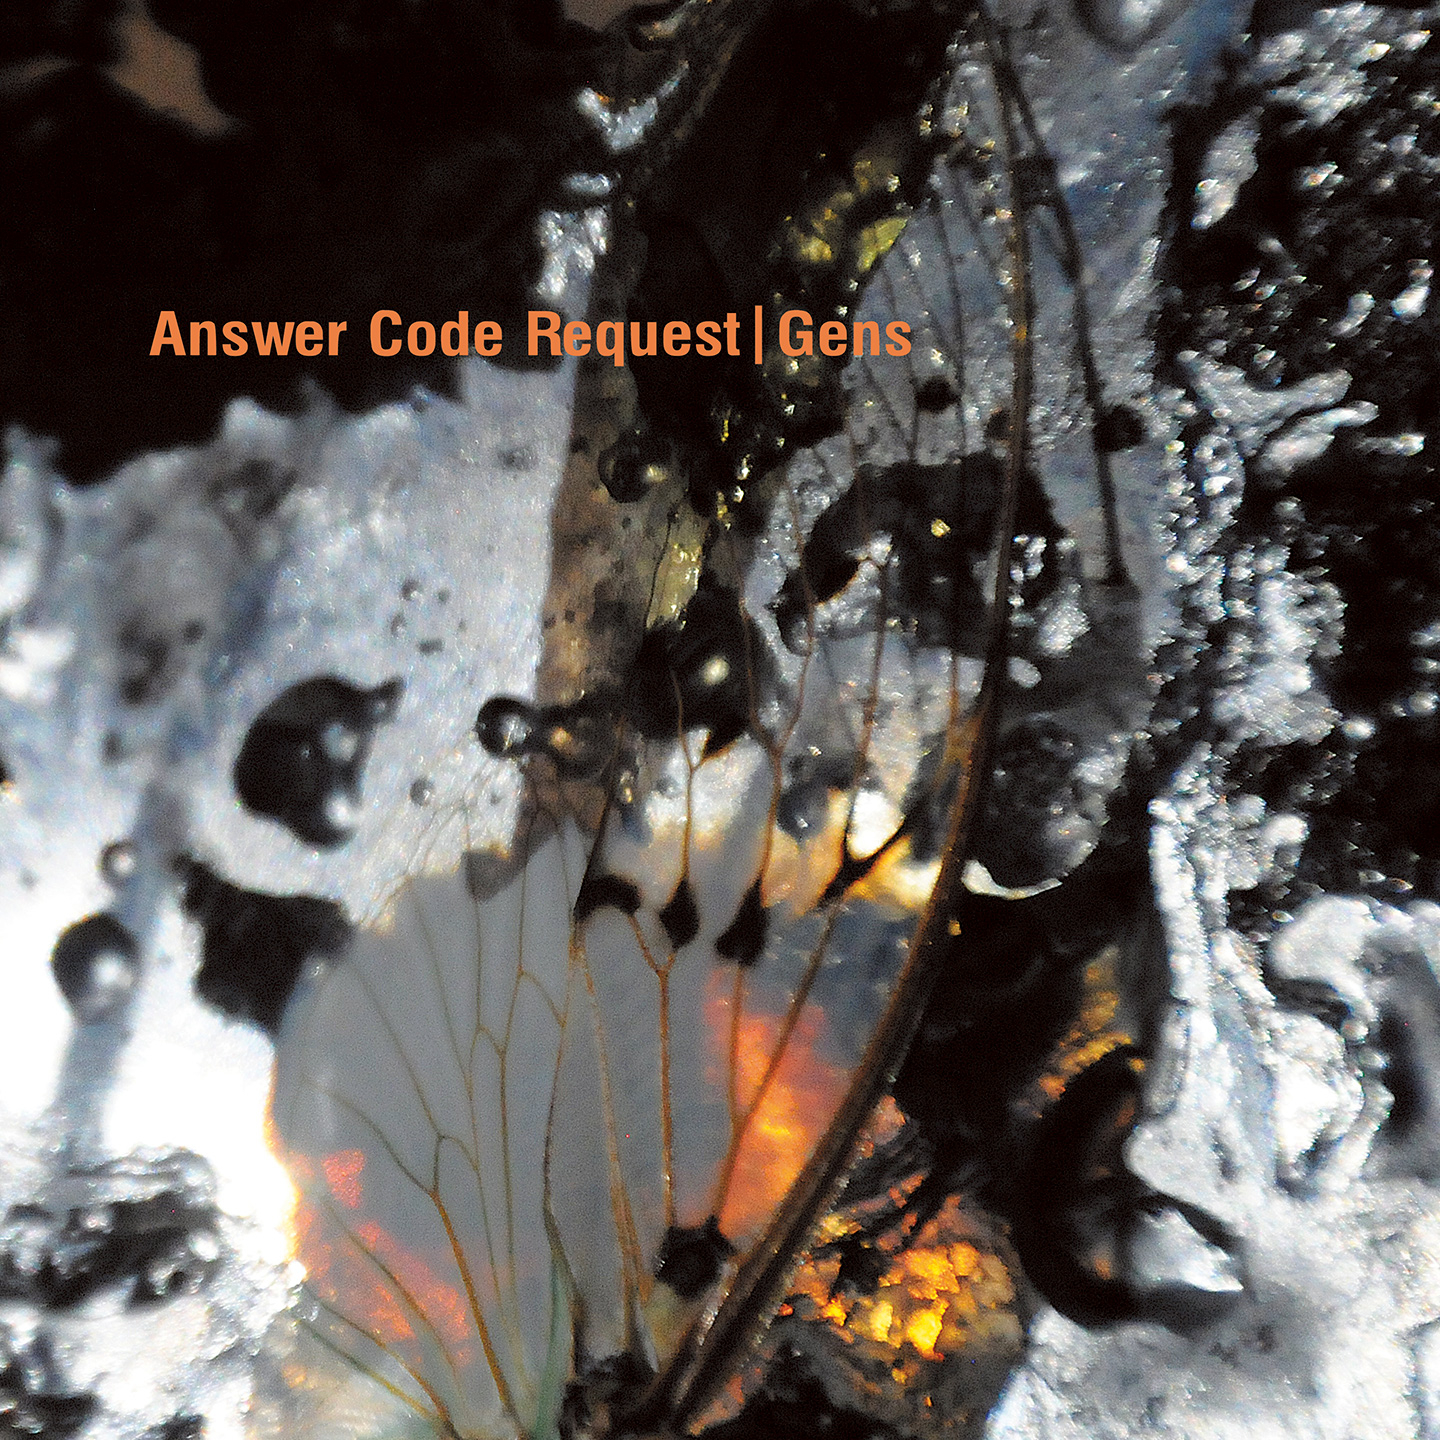 Answer Code Request - Gens